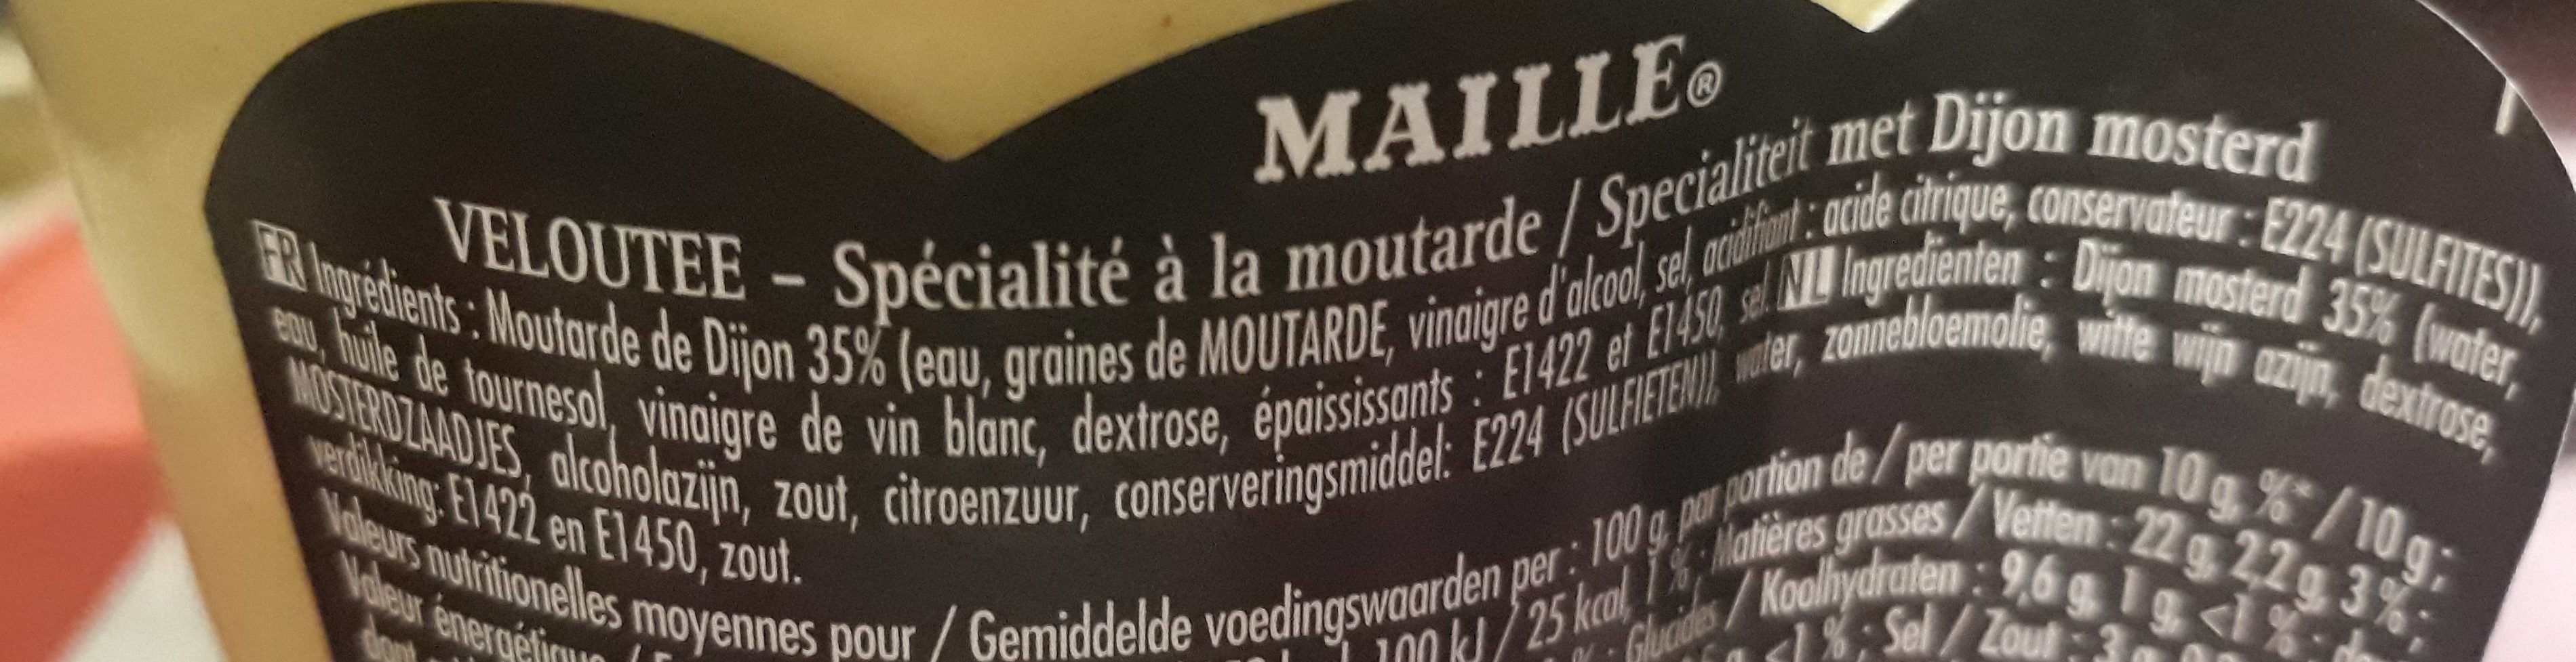 Maille Specialite à la Moutarde Veloute Bocal 360g - Ingredienti - fr